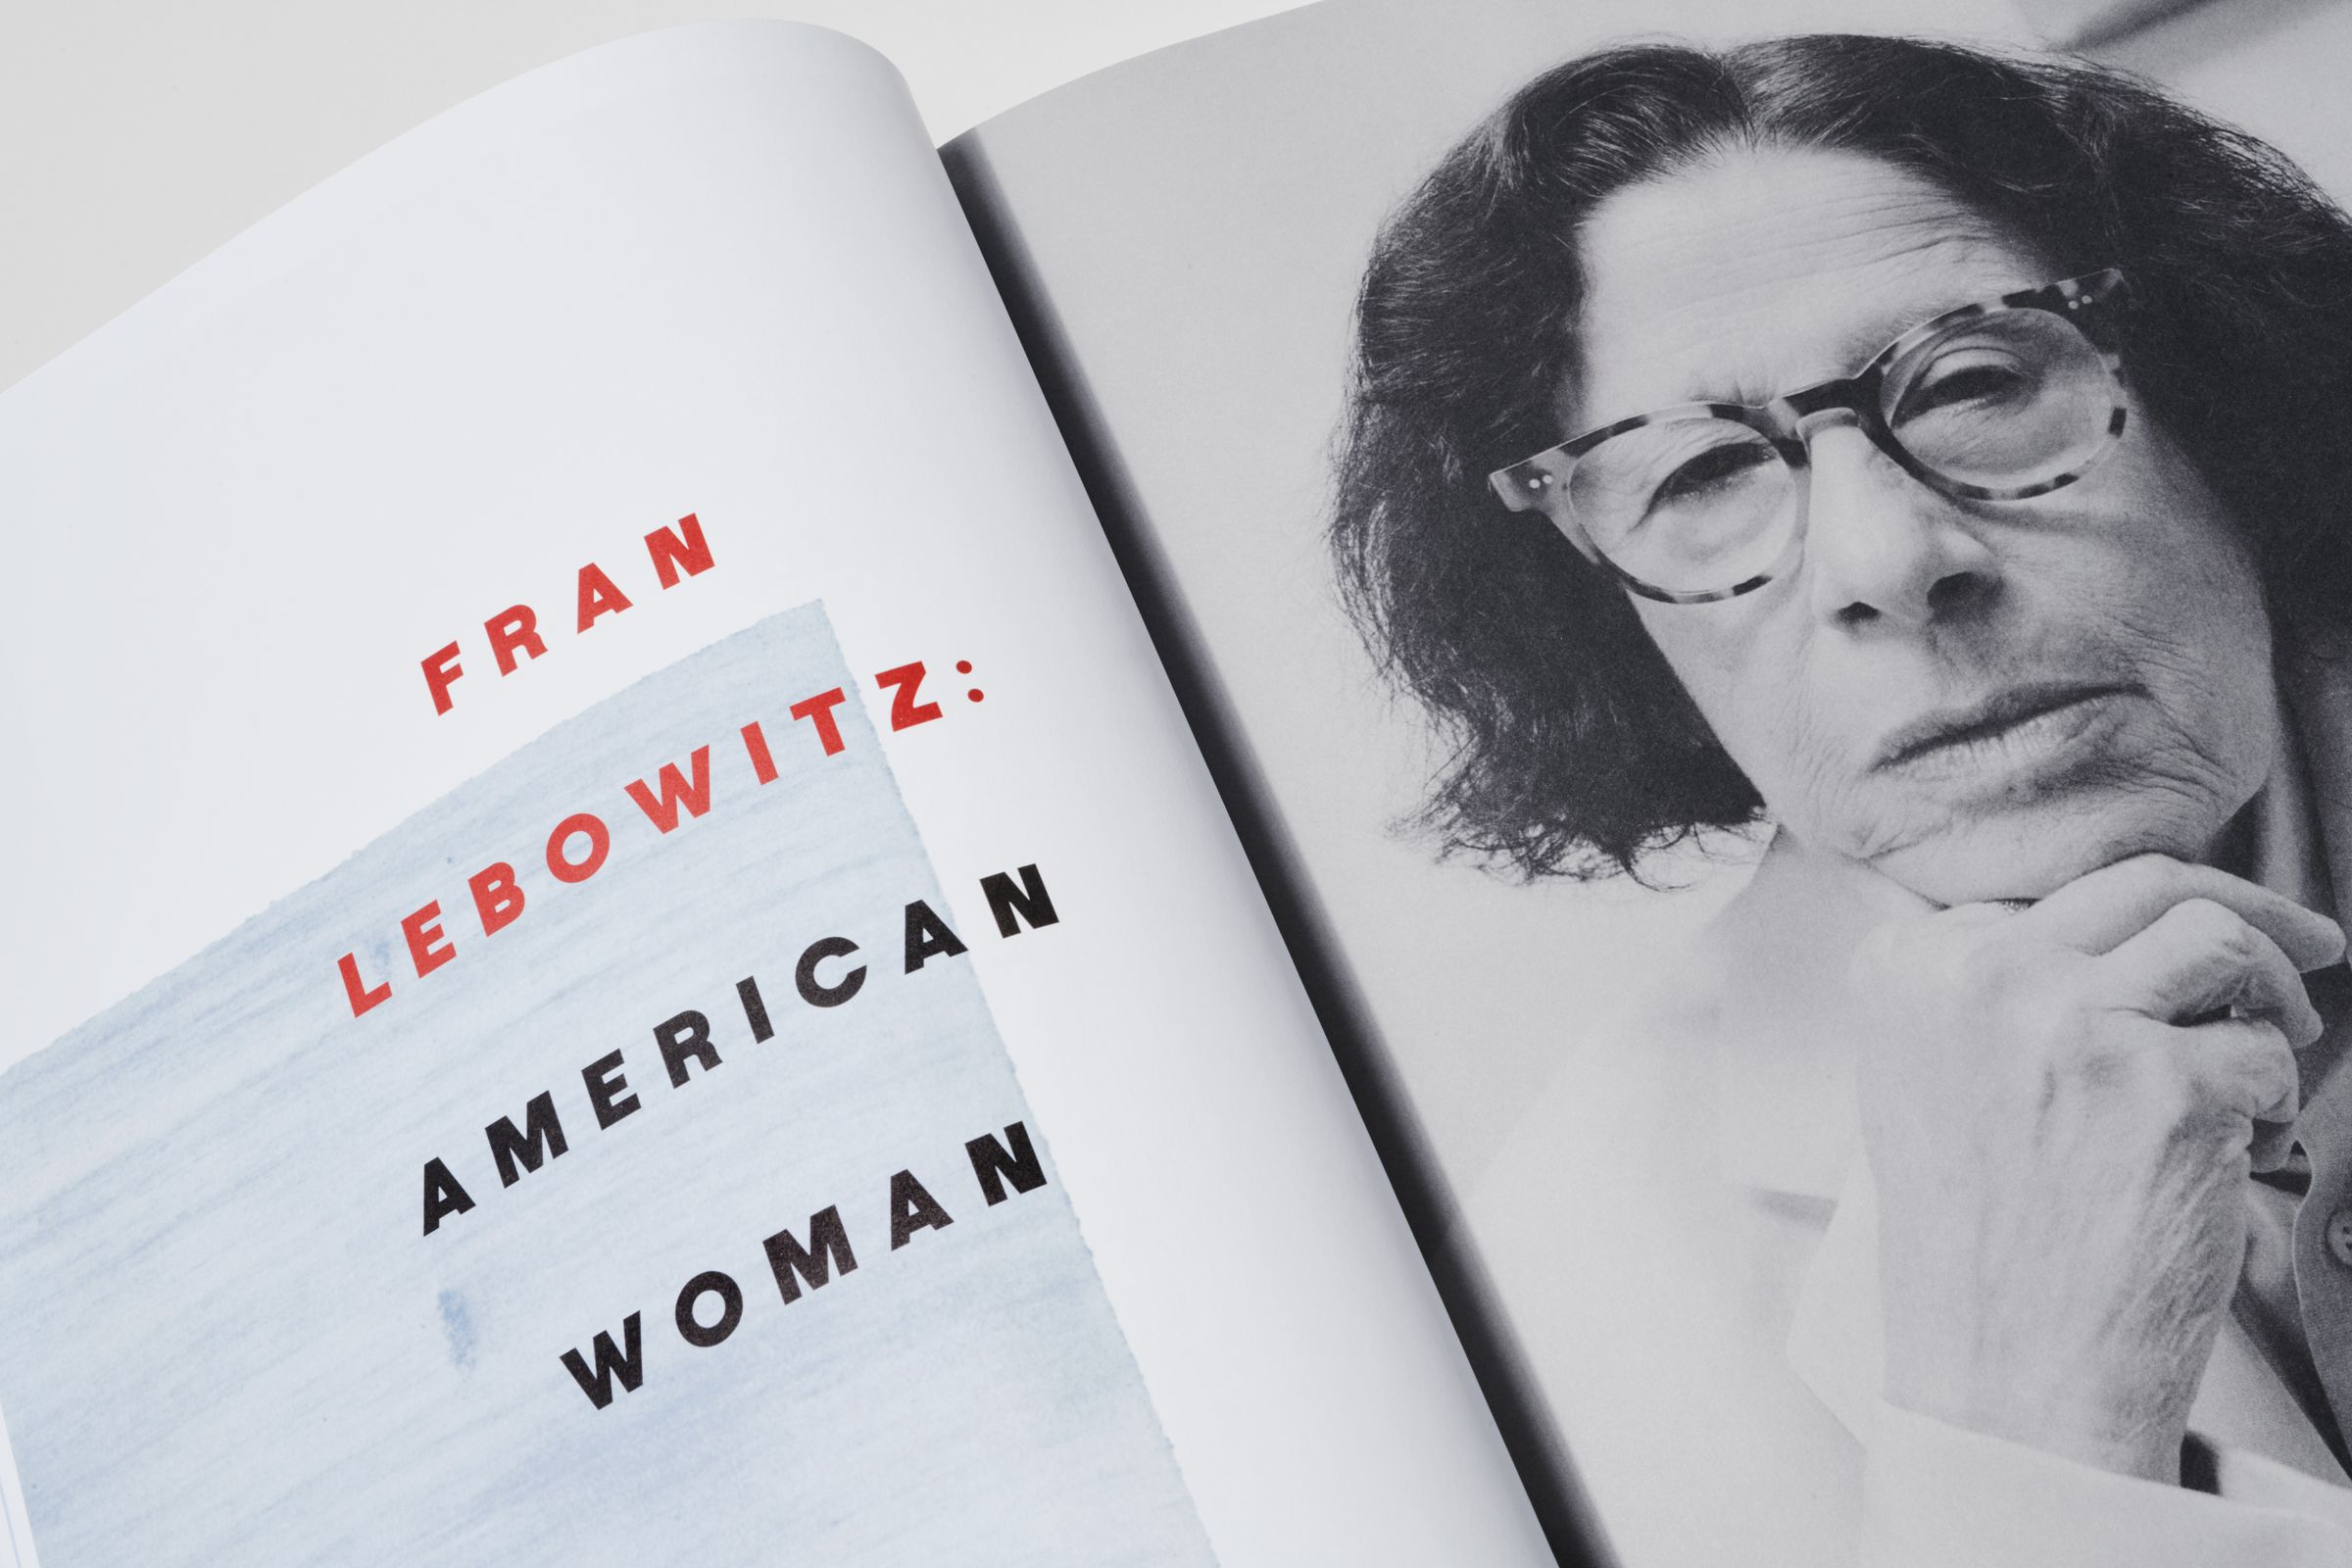 Rika Magazine issue no. 16 Fran Lebowitz photographed by Coco Capitan